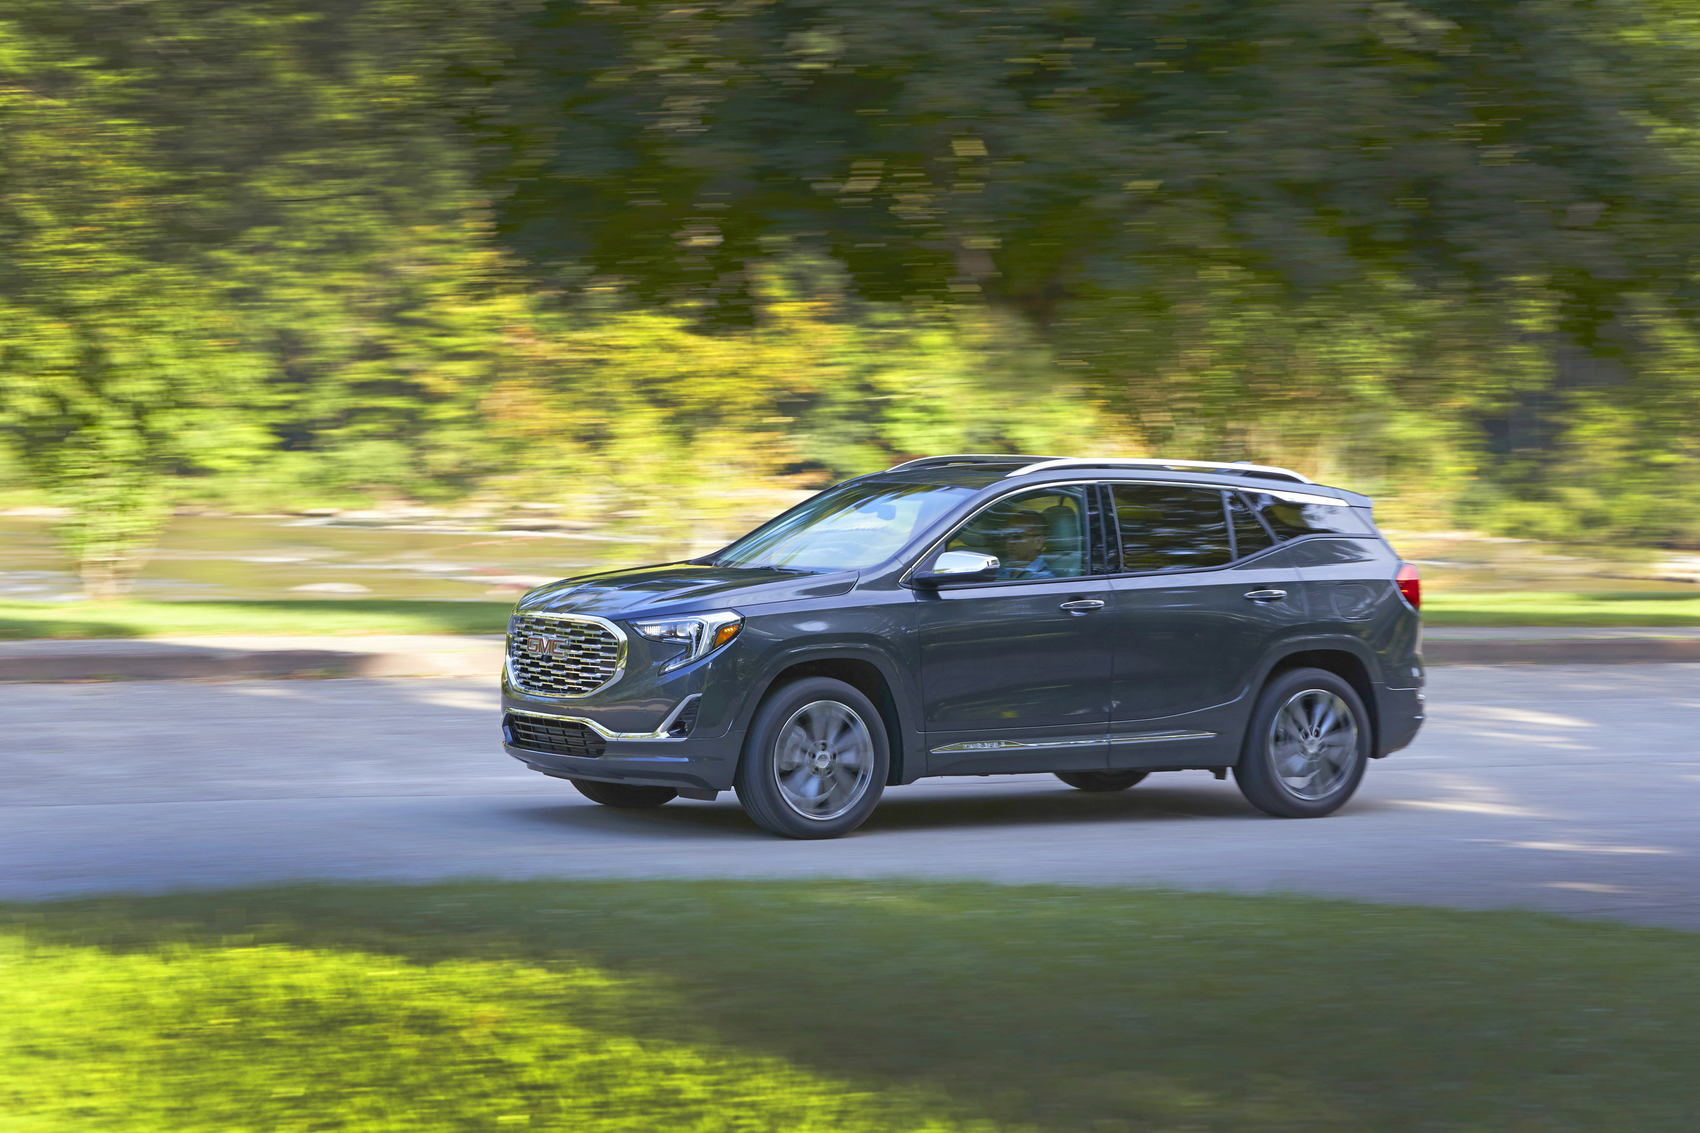 2019 GMC Terrain Denali Review: Compelling Choice Overall